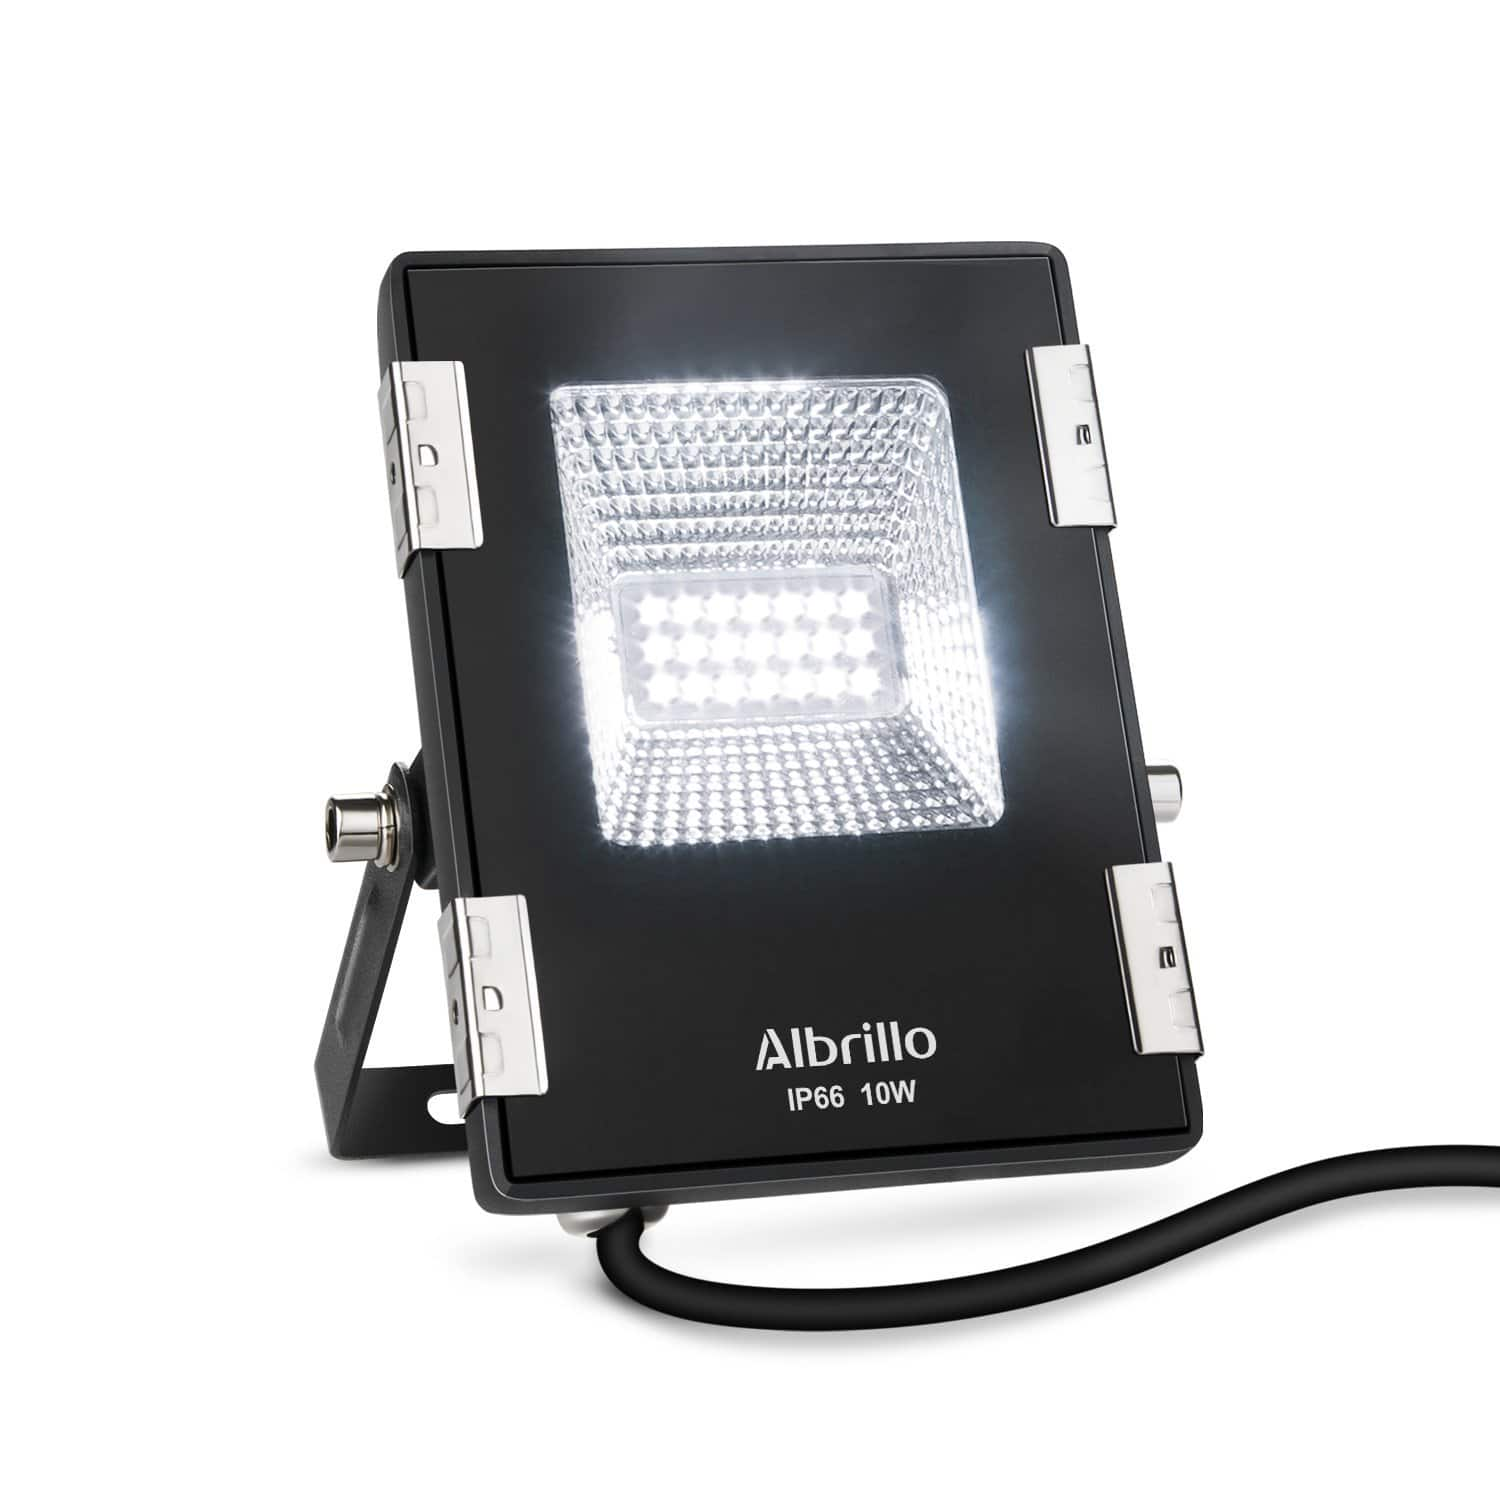 10W LED Outdoor Flood Light (Daylight White) - $5.99 + Free Shipping w/ Prime